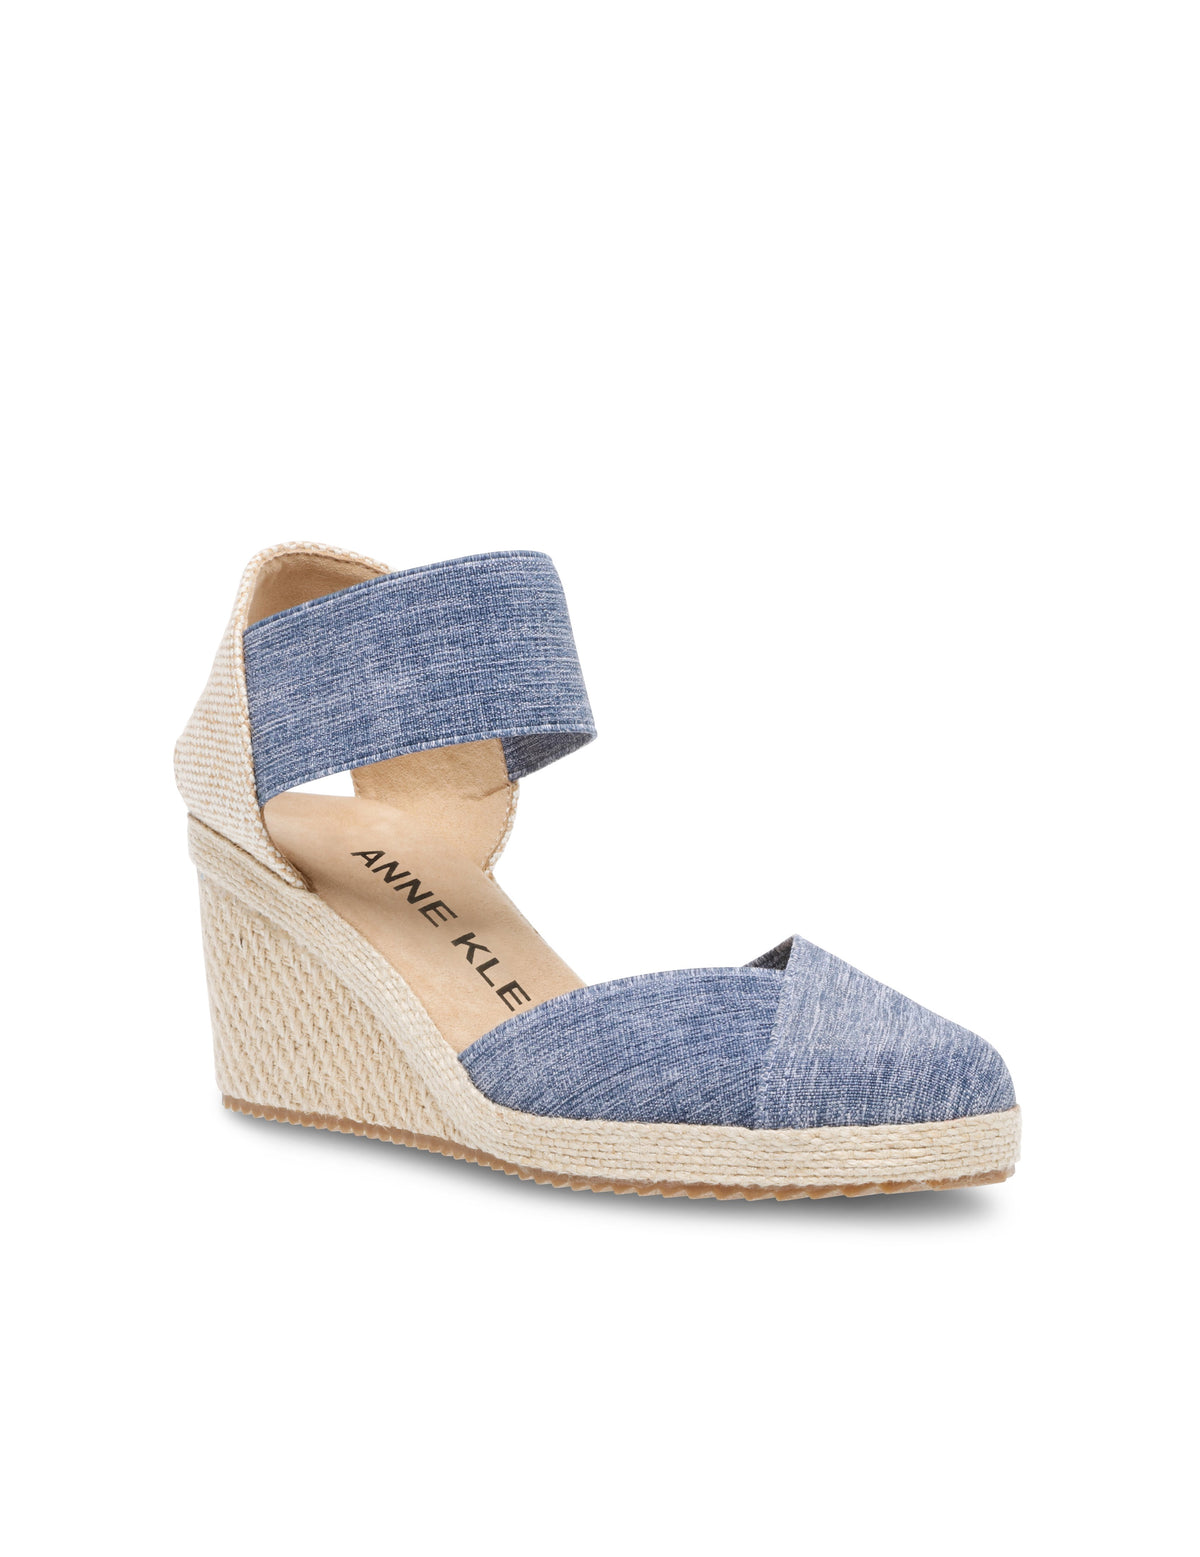 Anne Klein Zoey Round Toe Espadrille Wedge in Denim